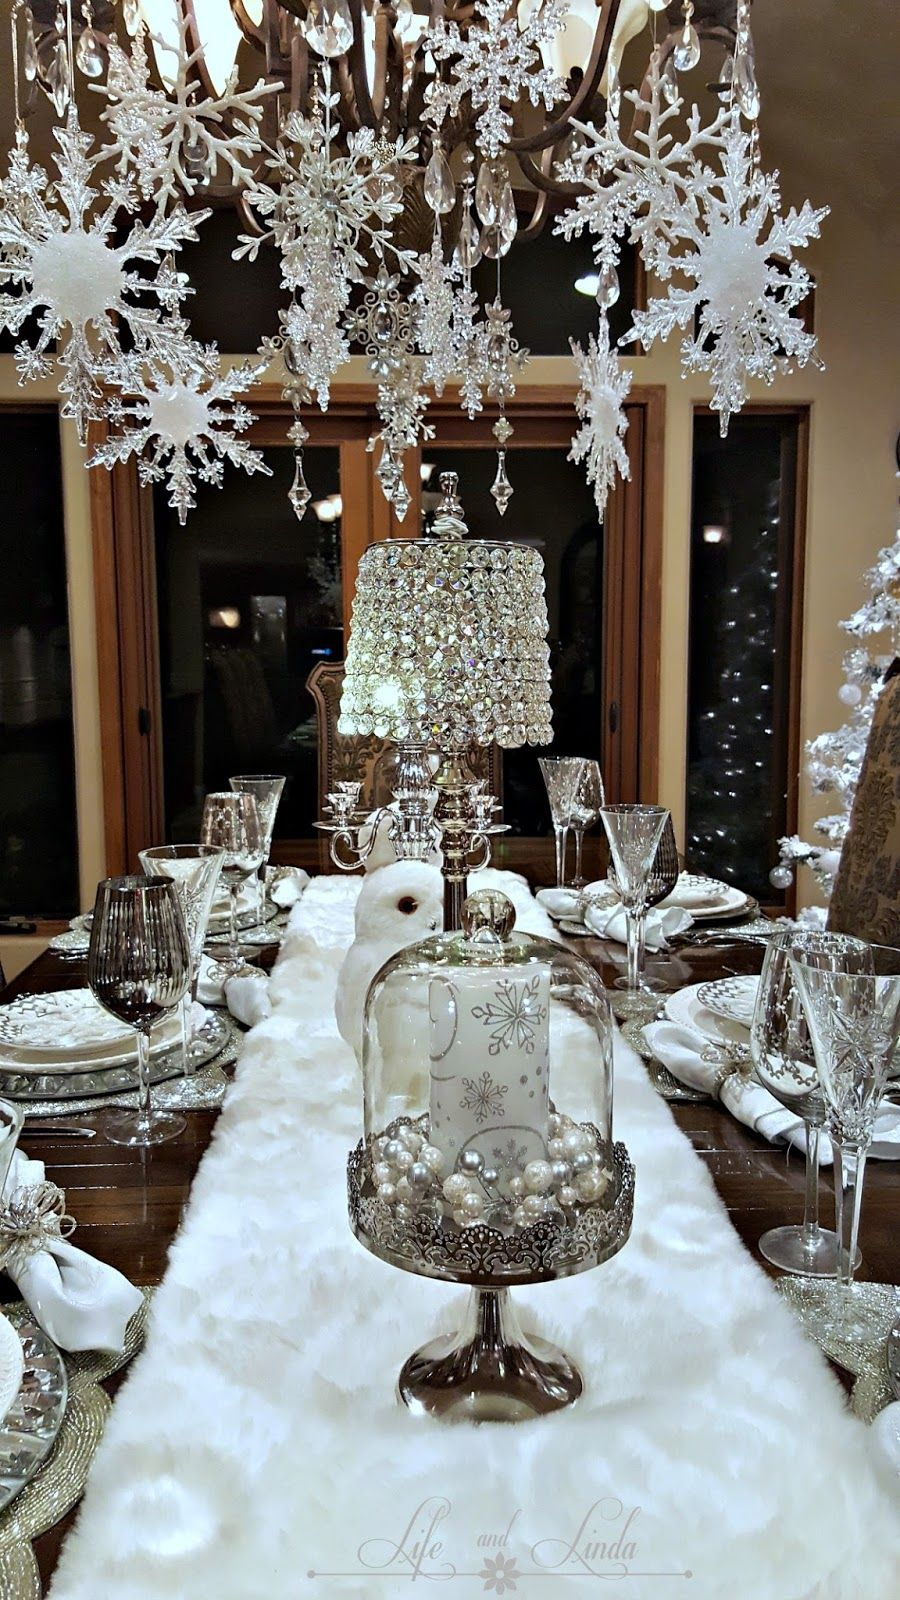 Snowflakes And Baubles Tablescape Christmas Chandelier Christmas Centerpieces Christmas Table Decorations